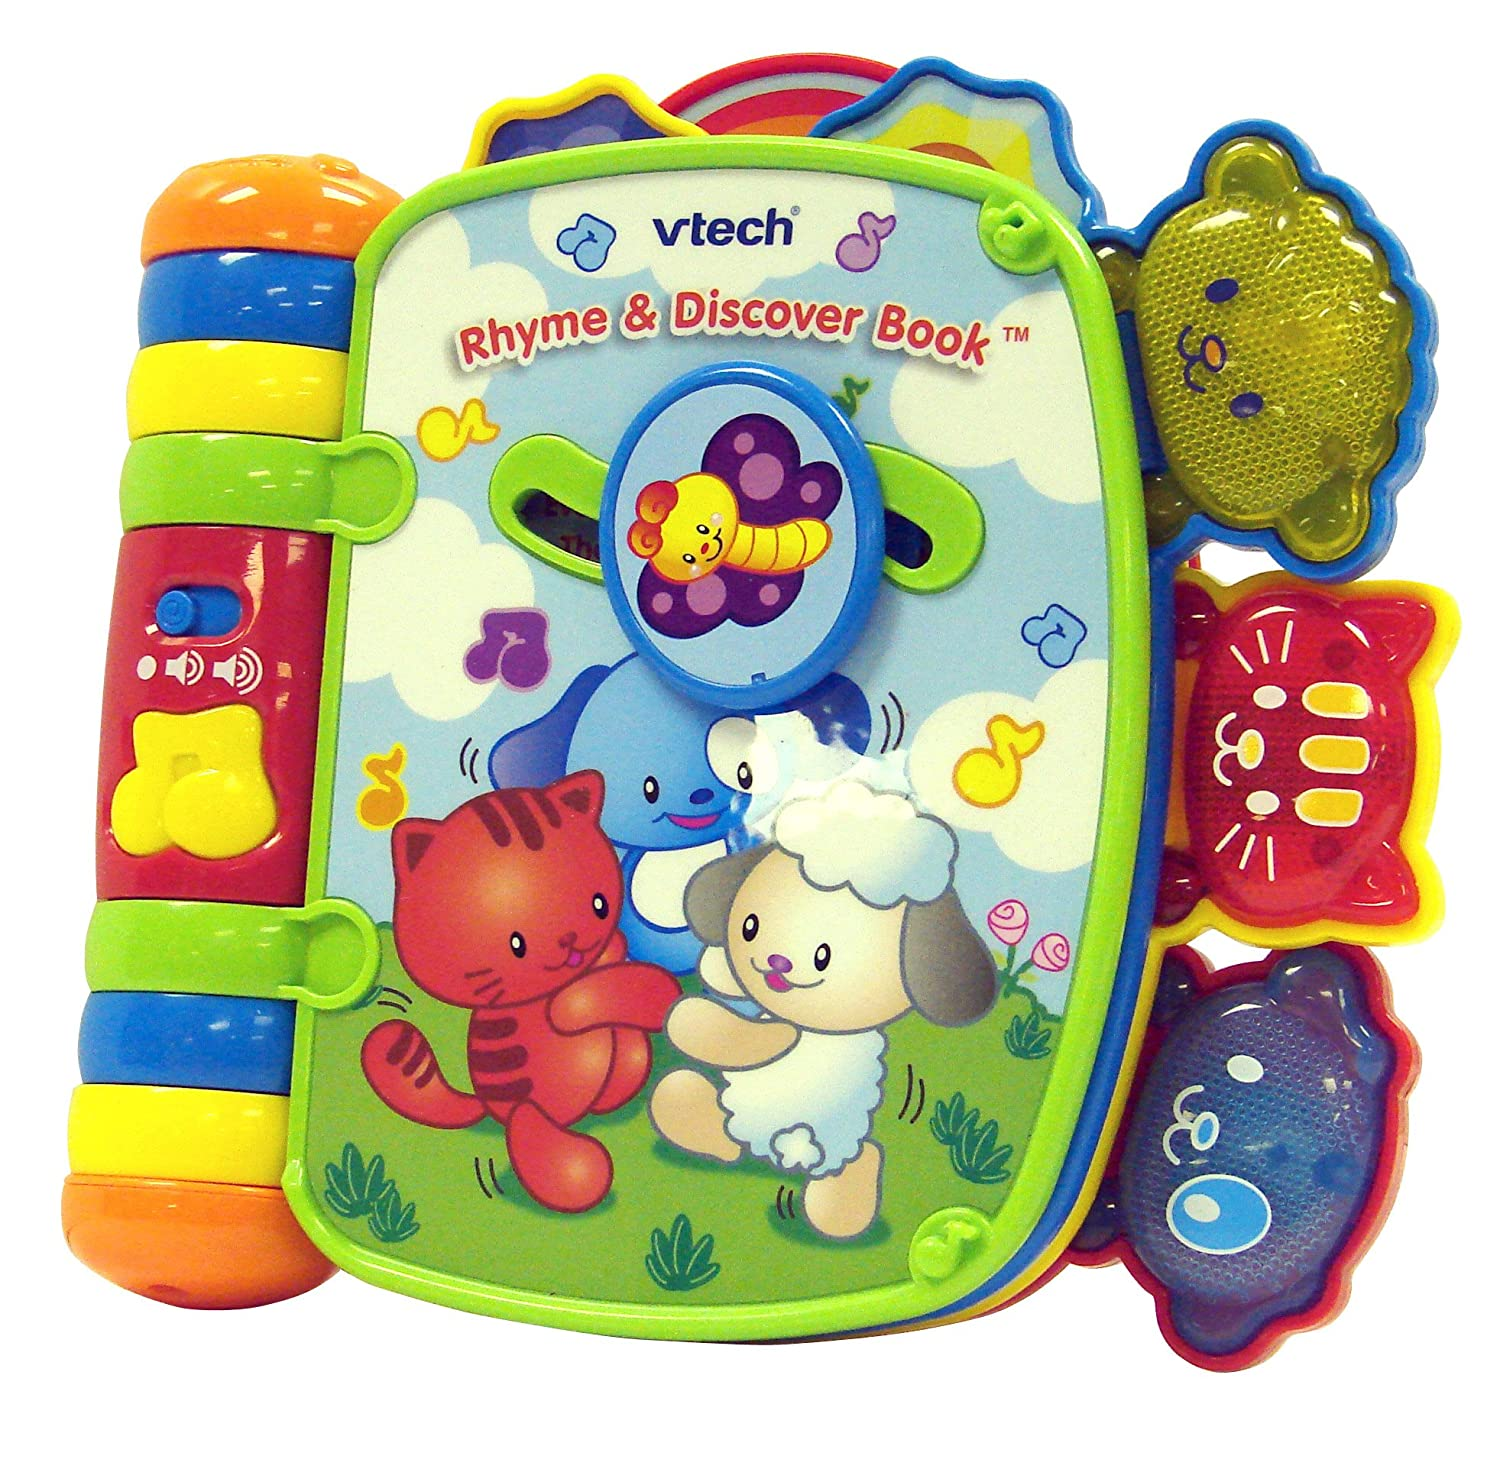 Amazon VTech Rhyme and Discover Book Frustration Free